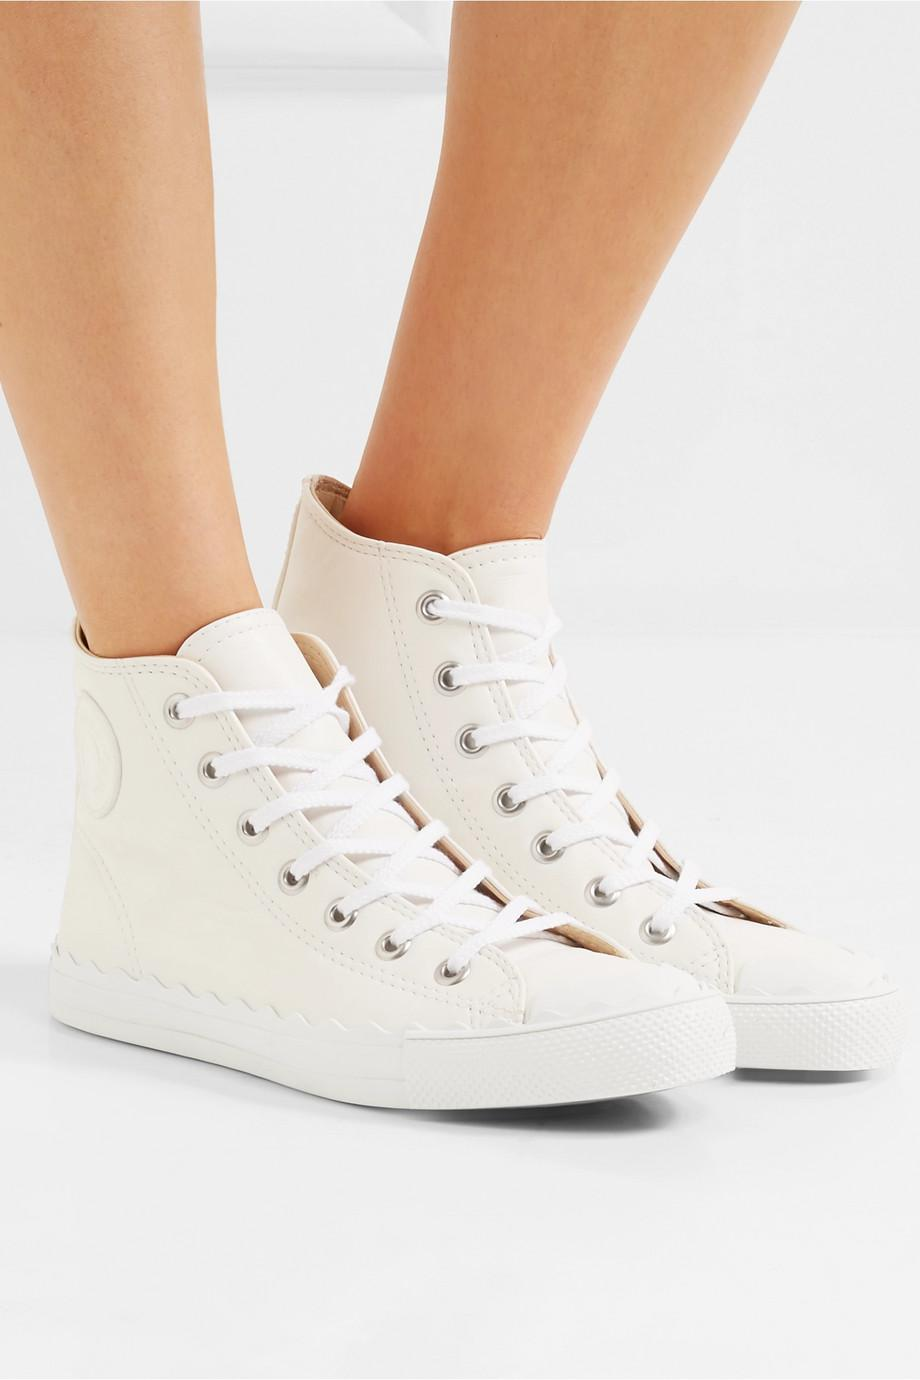 Chloé White Kyle Leather High-top Sneakers